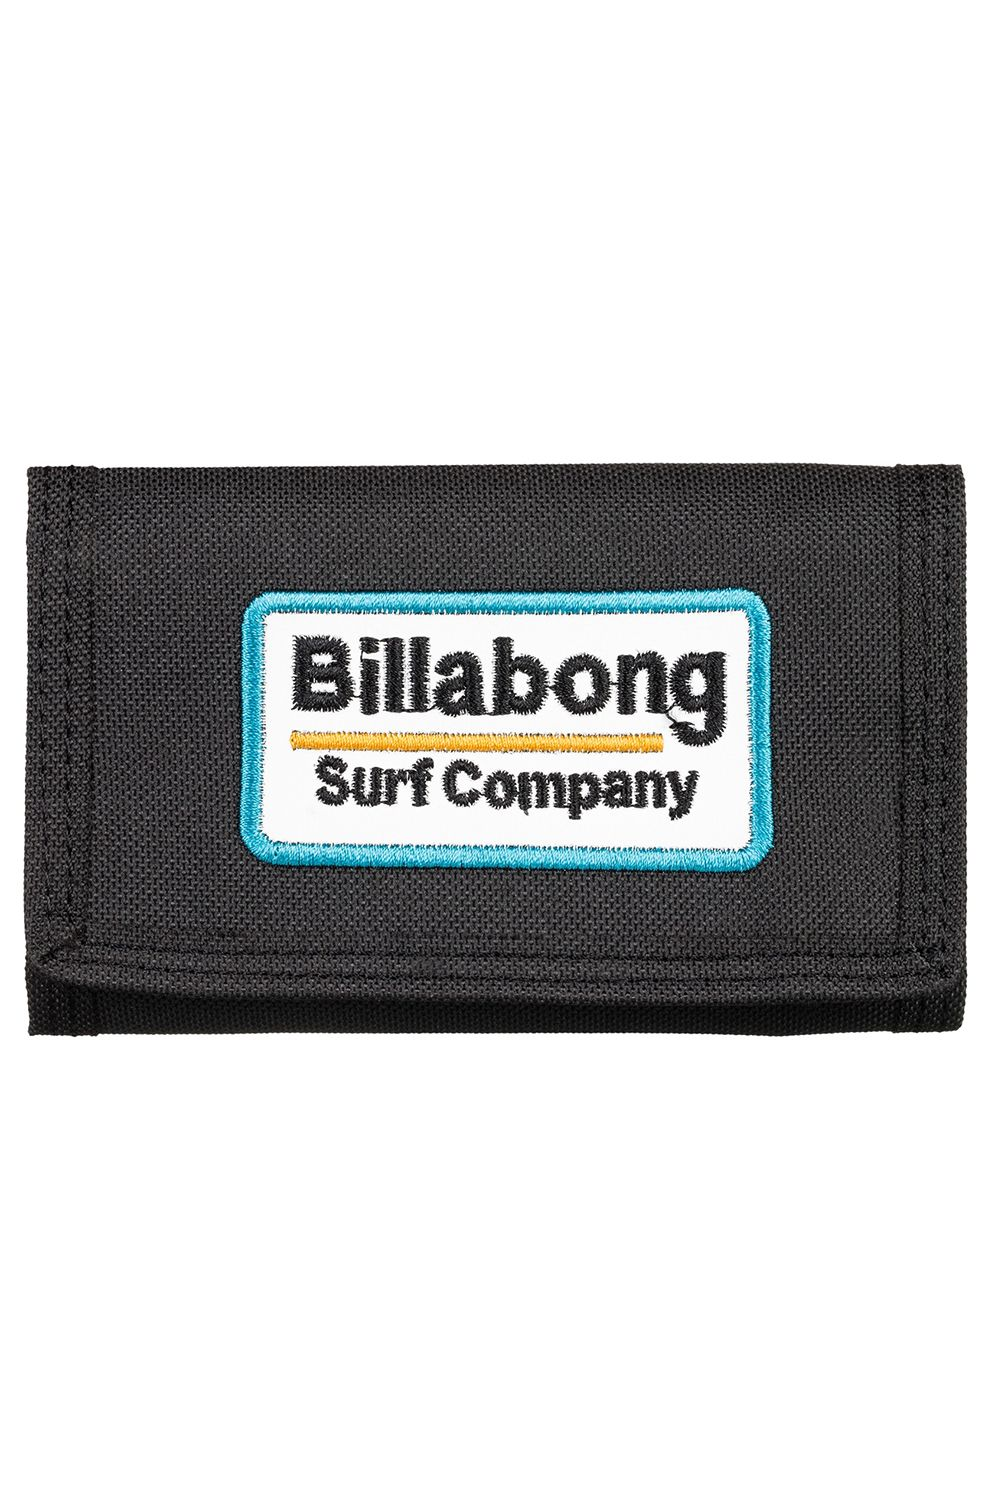 Carteira Billabong WALLED LITE Black